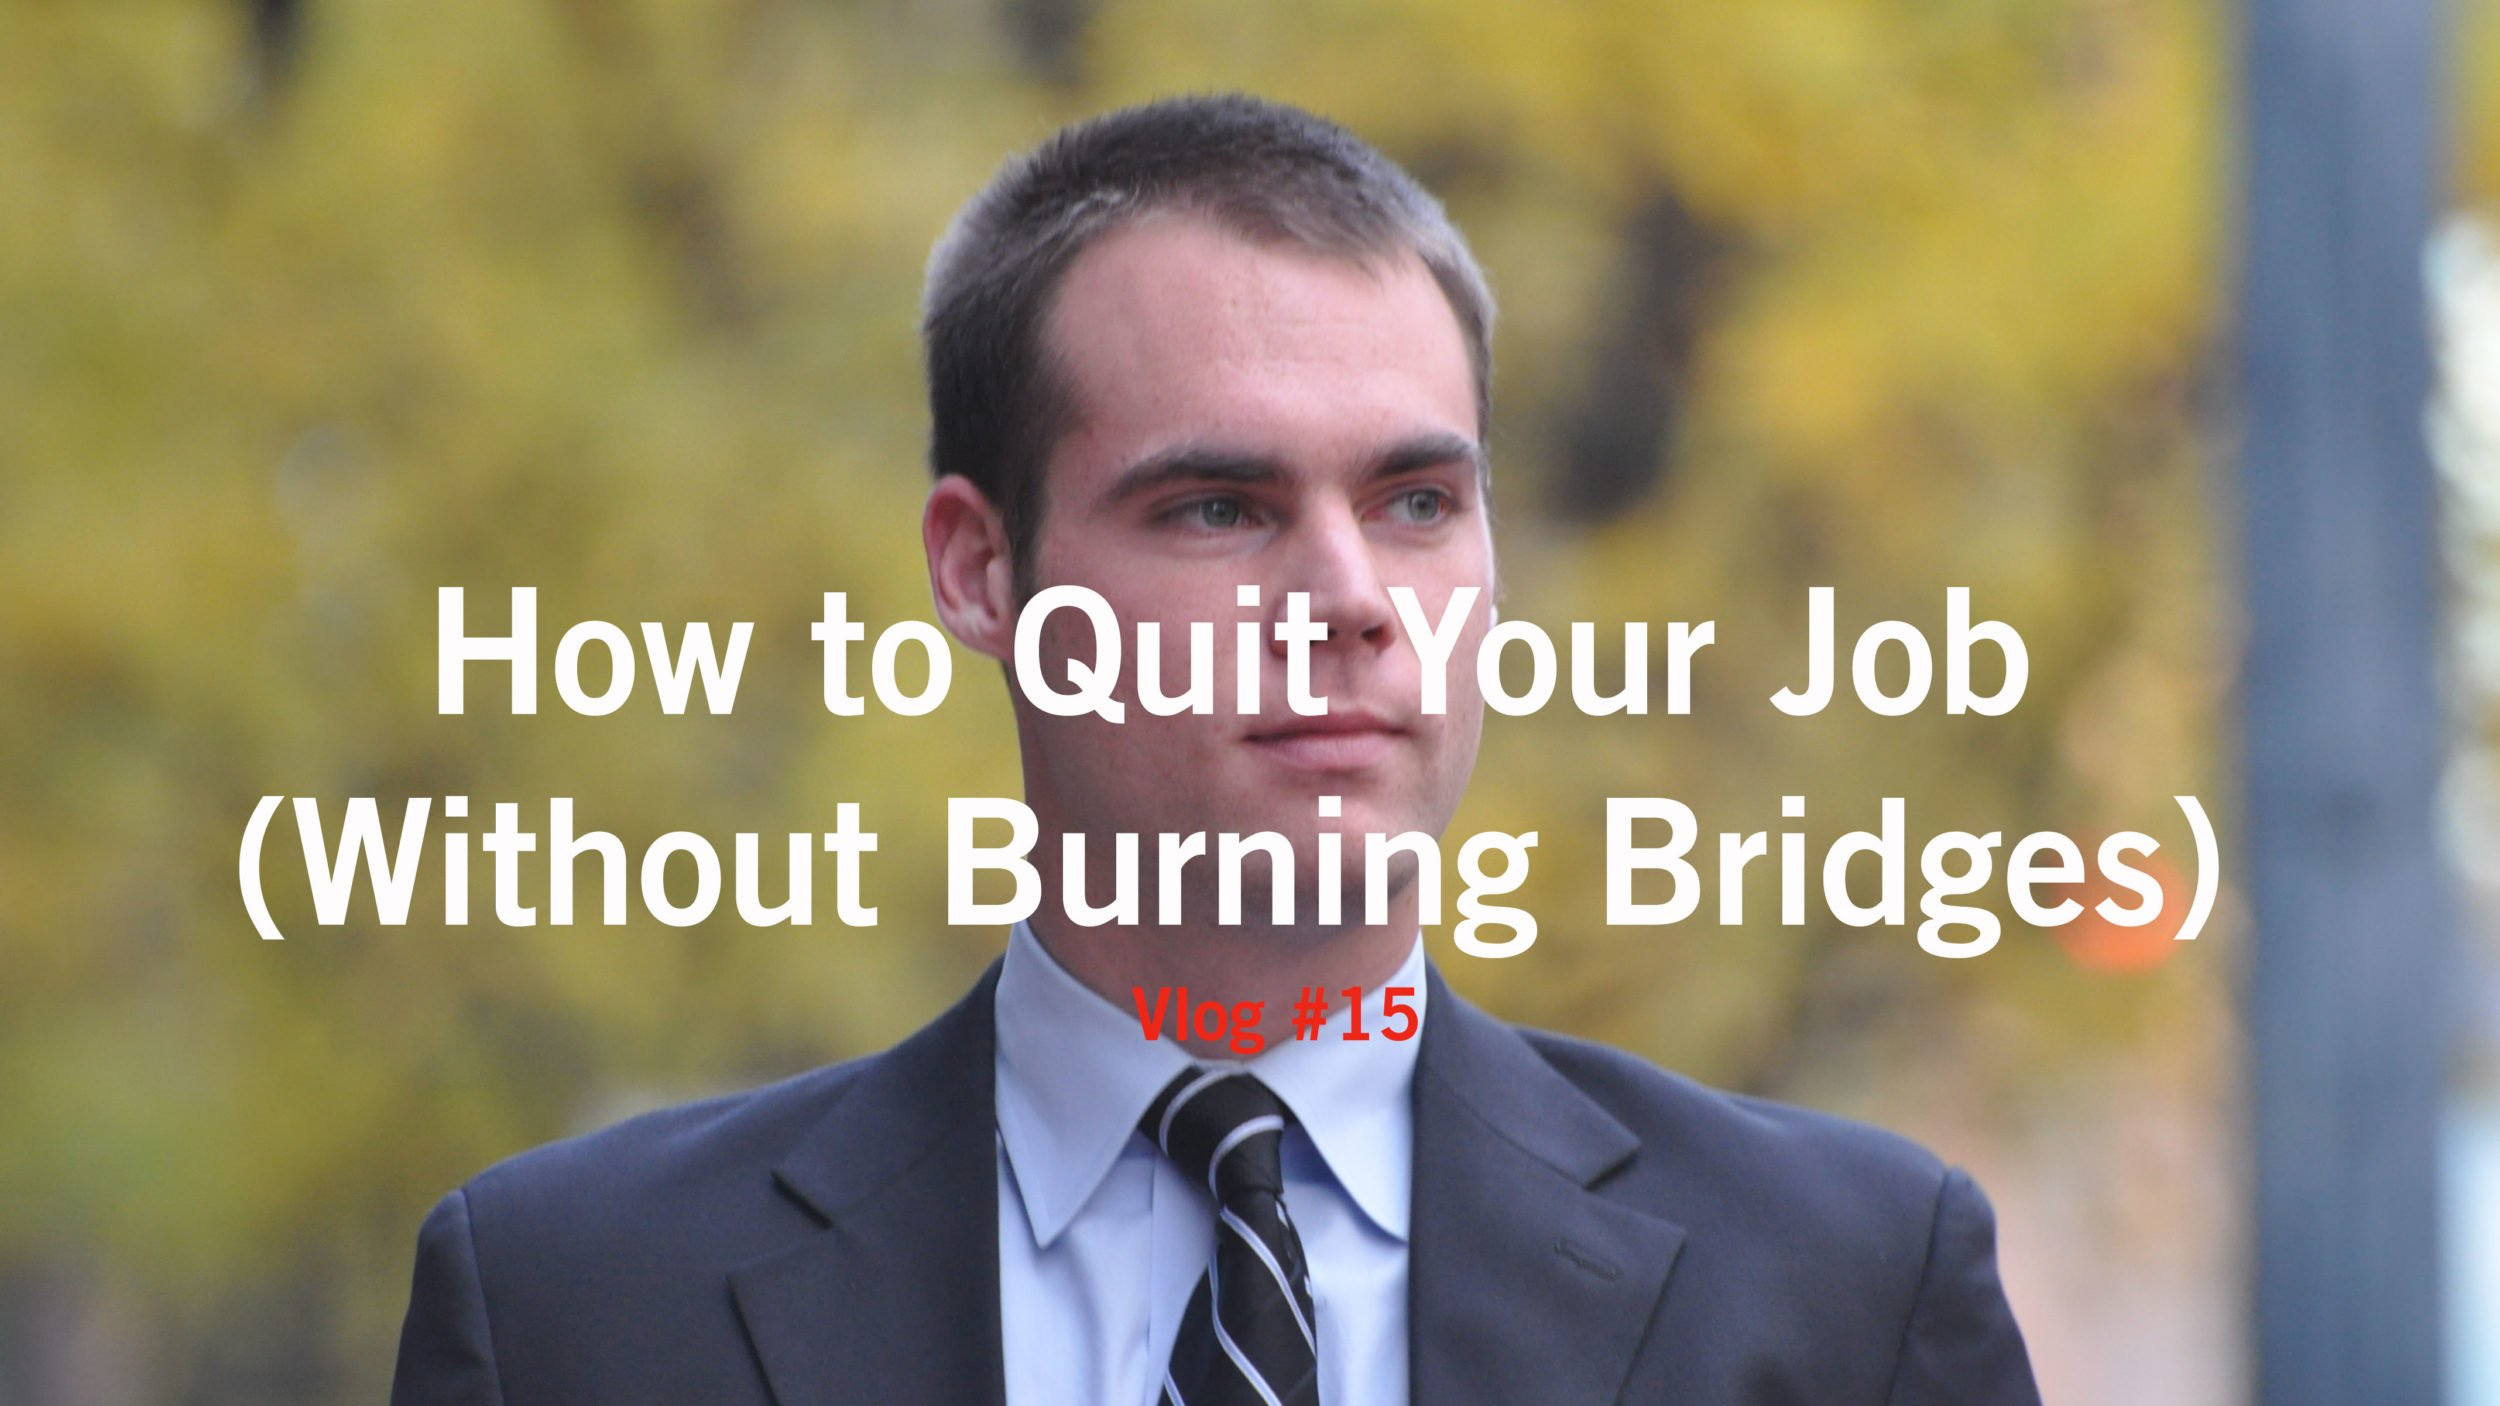 Vlog 15: How to Quit Your Job